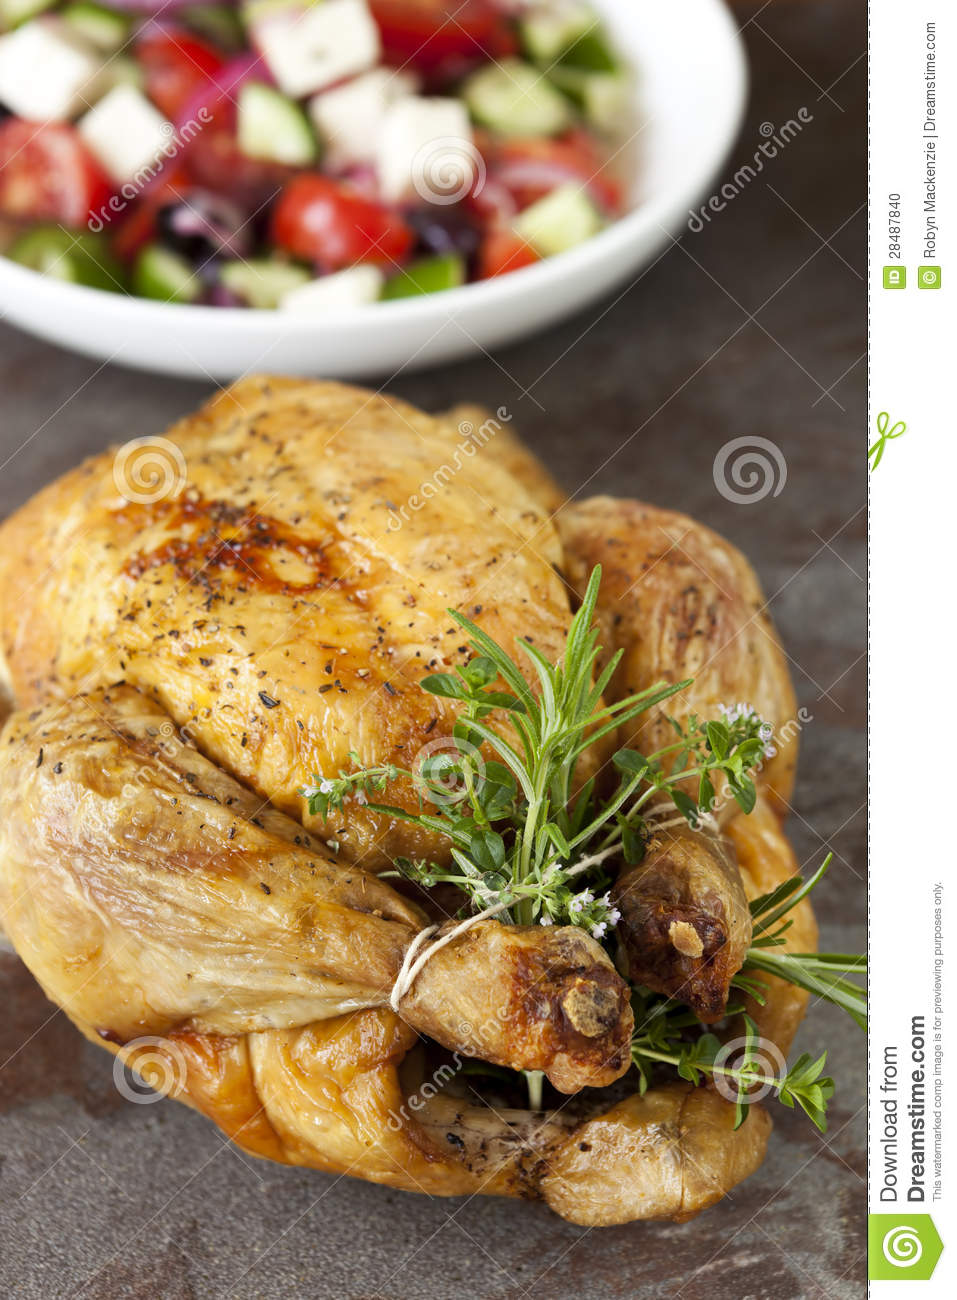 Roasted Chicken With Herbs And Greek Salad Stock Photo - Image ...